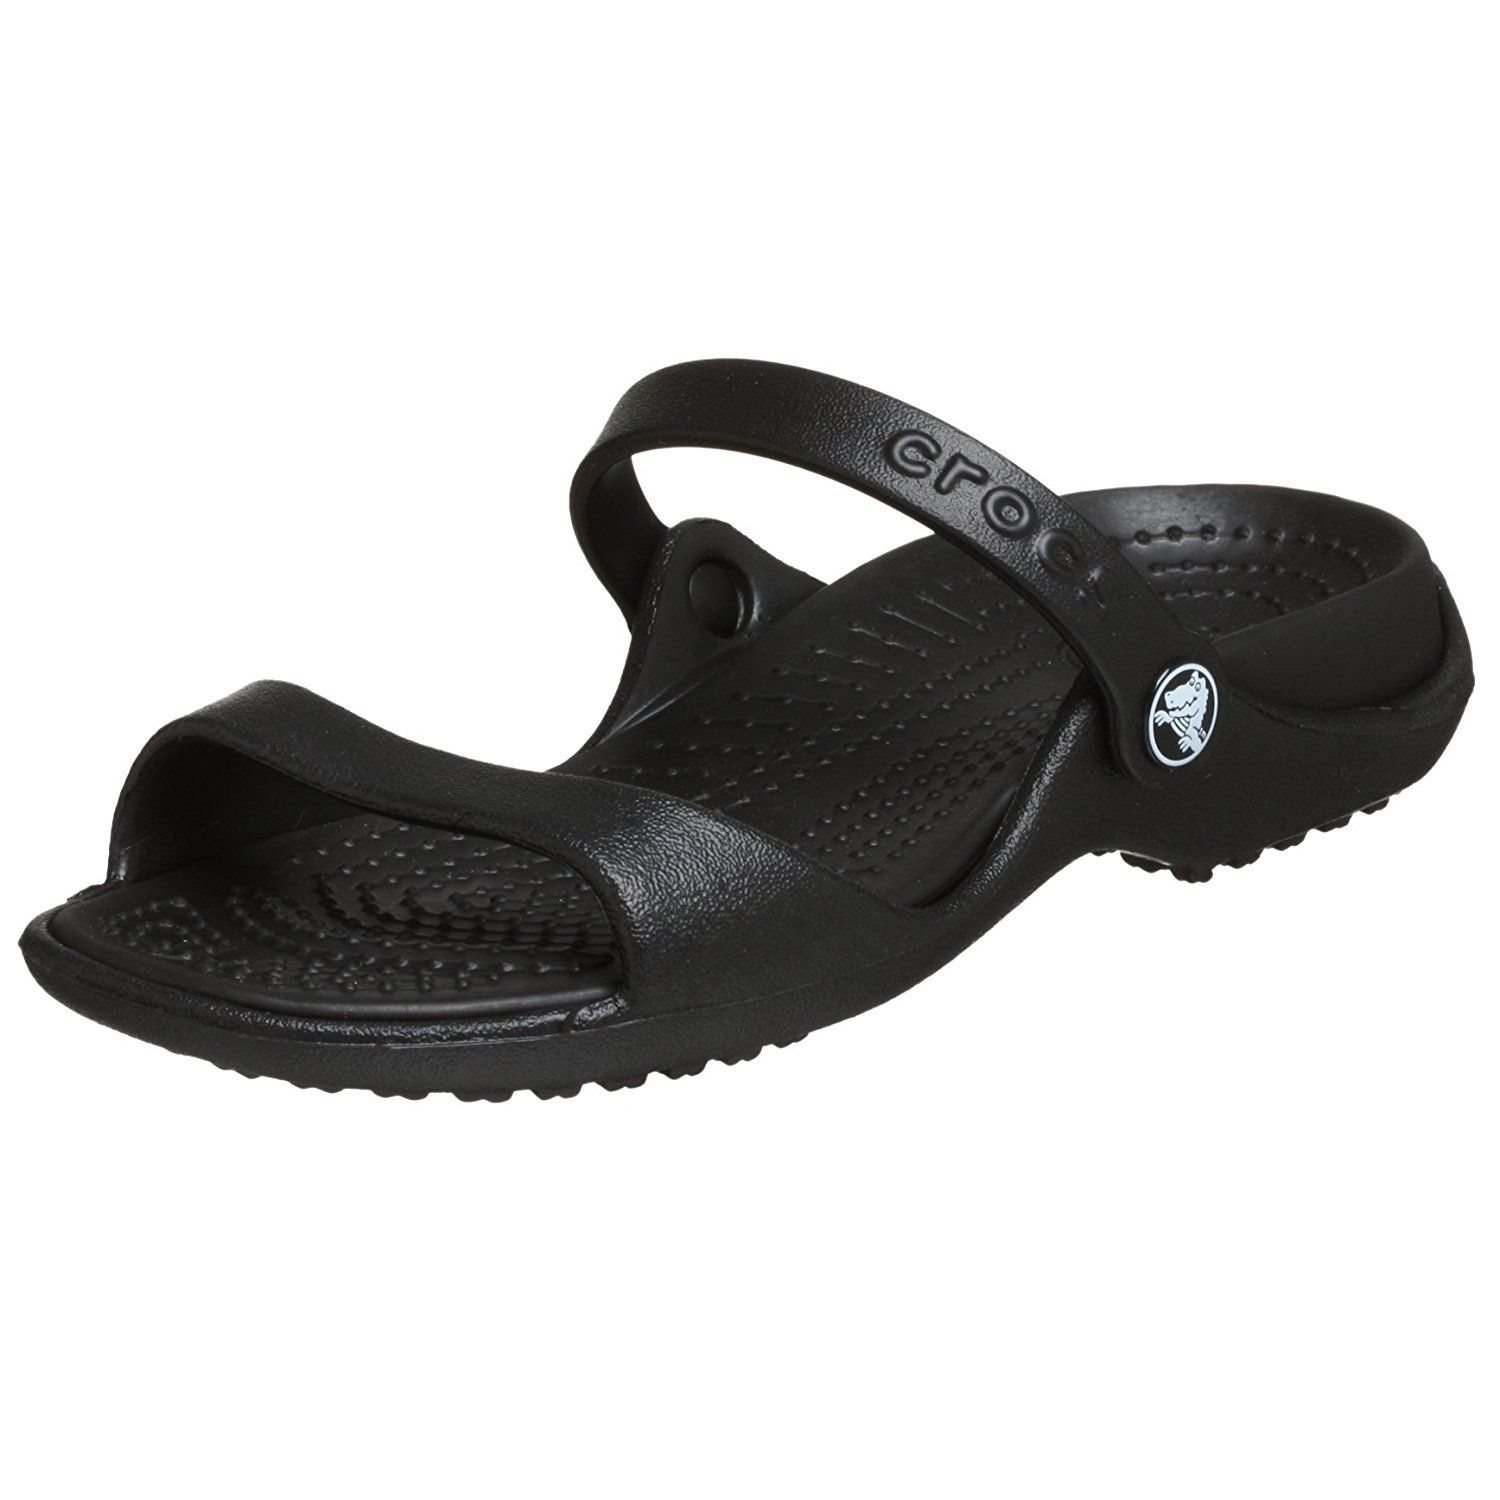 Crocs Women S Cleo Sandal Thanks For Viewing Our Photograph This Is Our Affiliate Link Womensslidesandals Crocs Cleo Crocs Sandals Basic Sandals